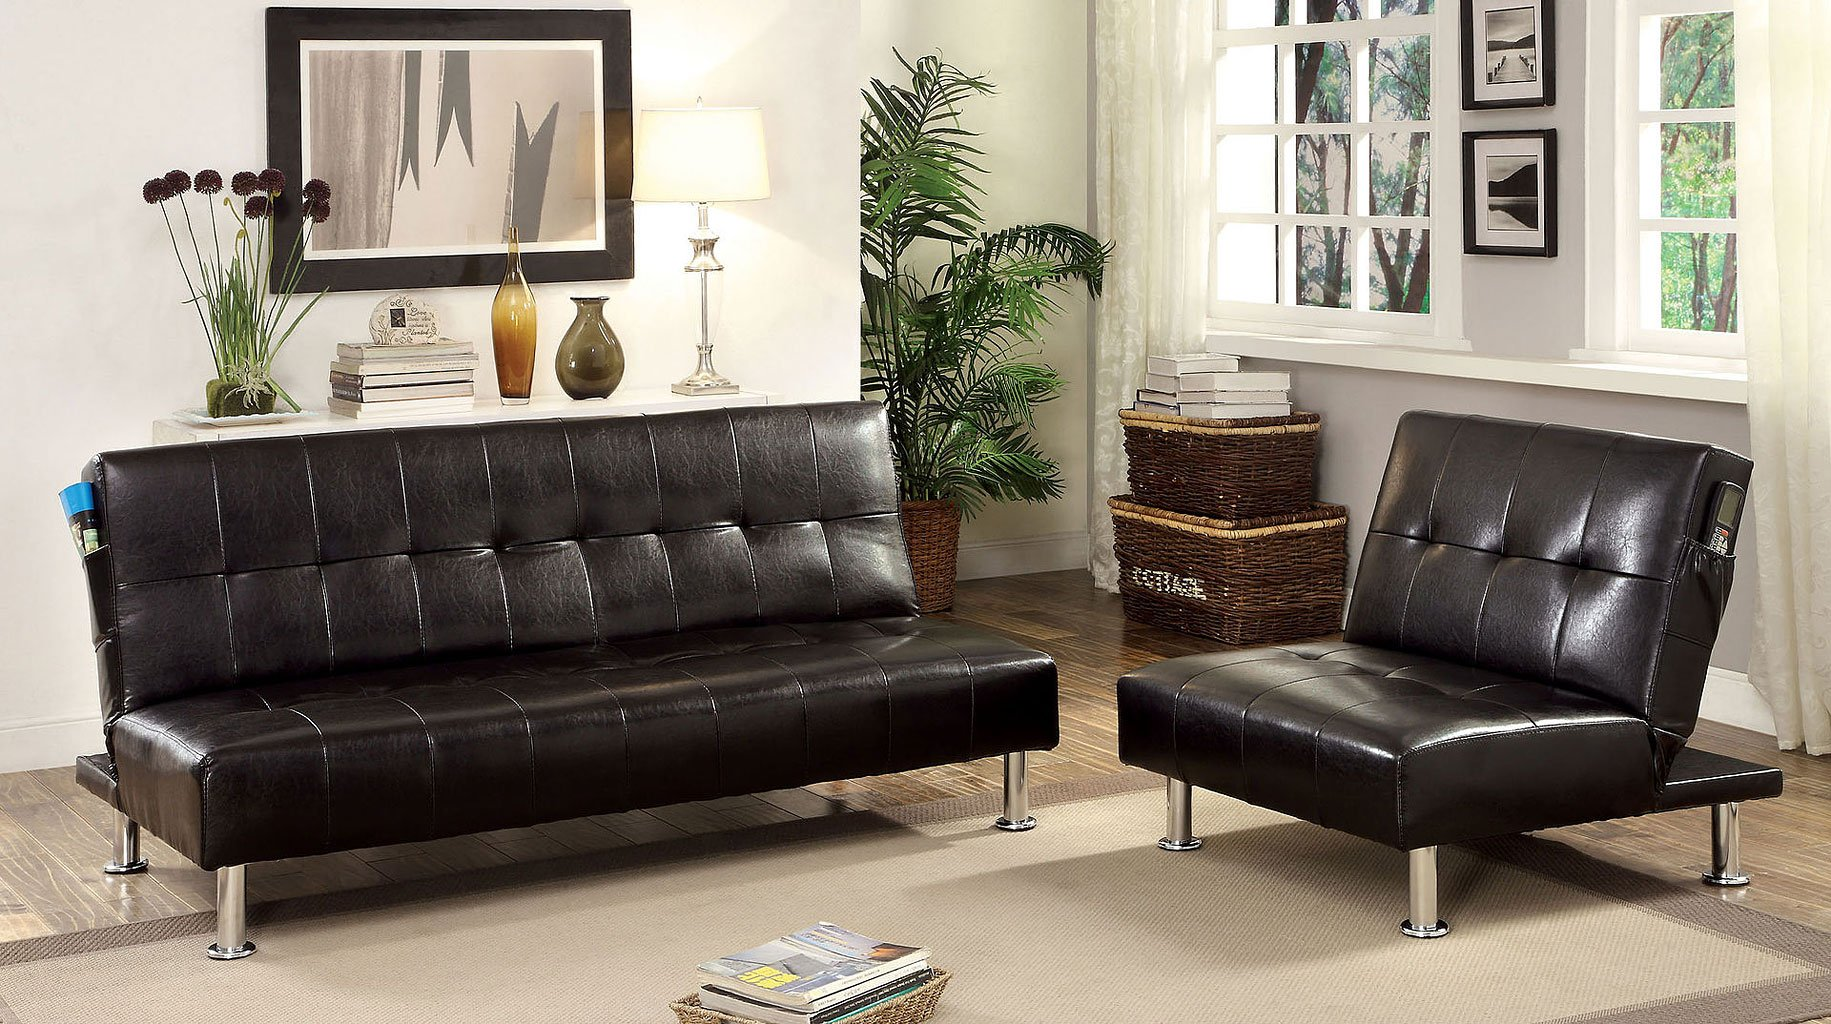 Bulle Living Room Set (Black)